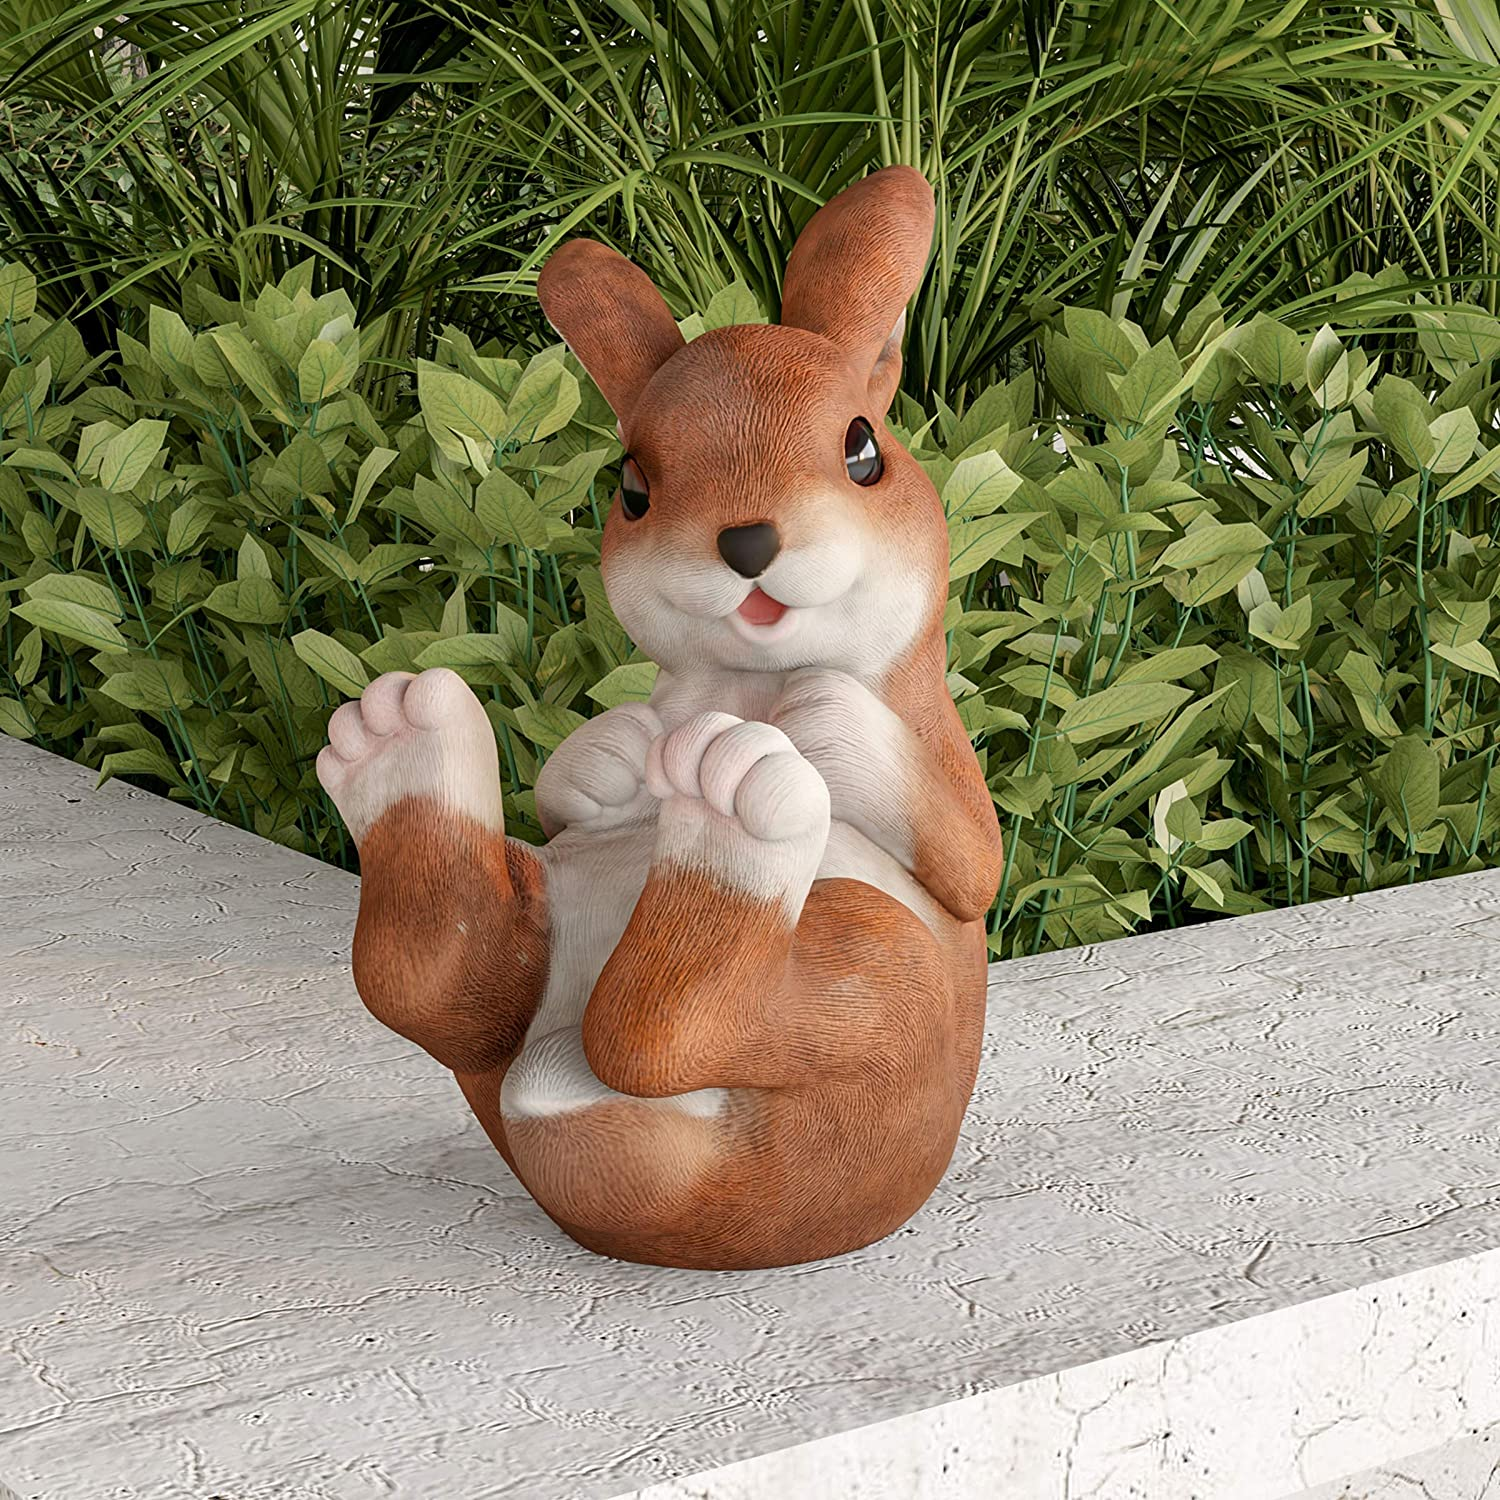 Pure Garden 50-LG1097 Bunny Rabbit Statue-Resin Animal Figurine for Outdoor Lawn Decor for Flower Beds, Fairy Gardens, Backyards and More